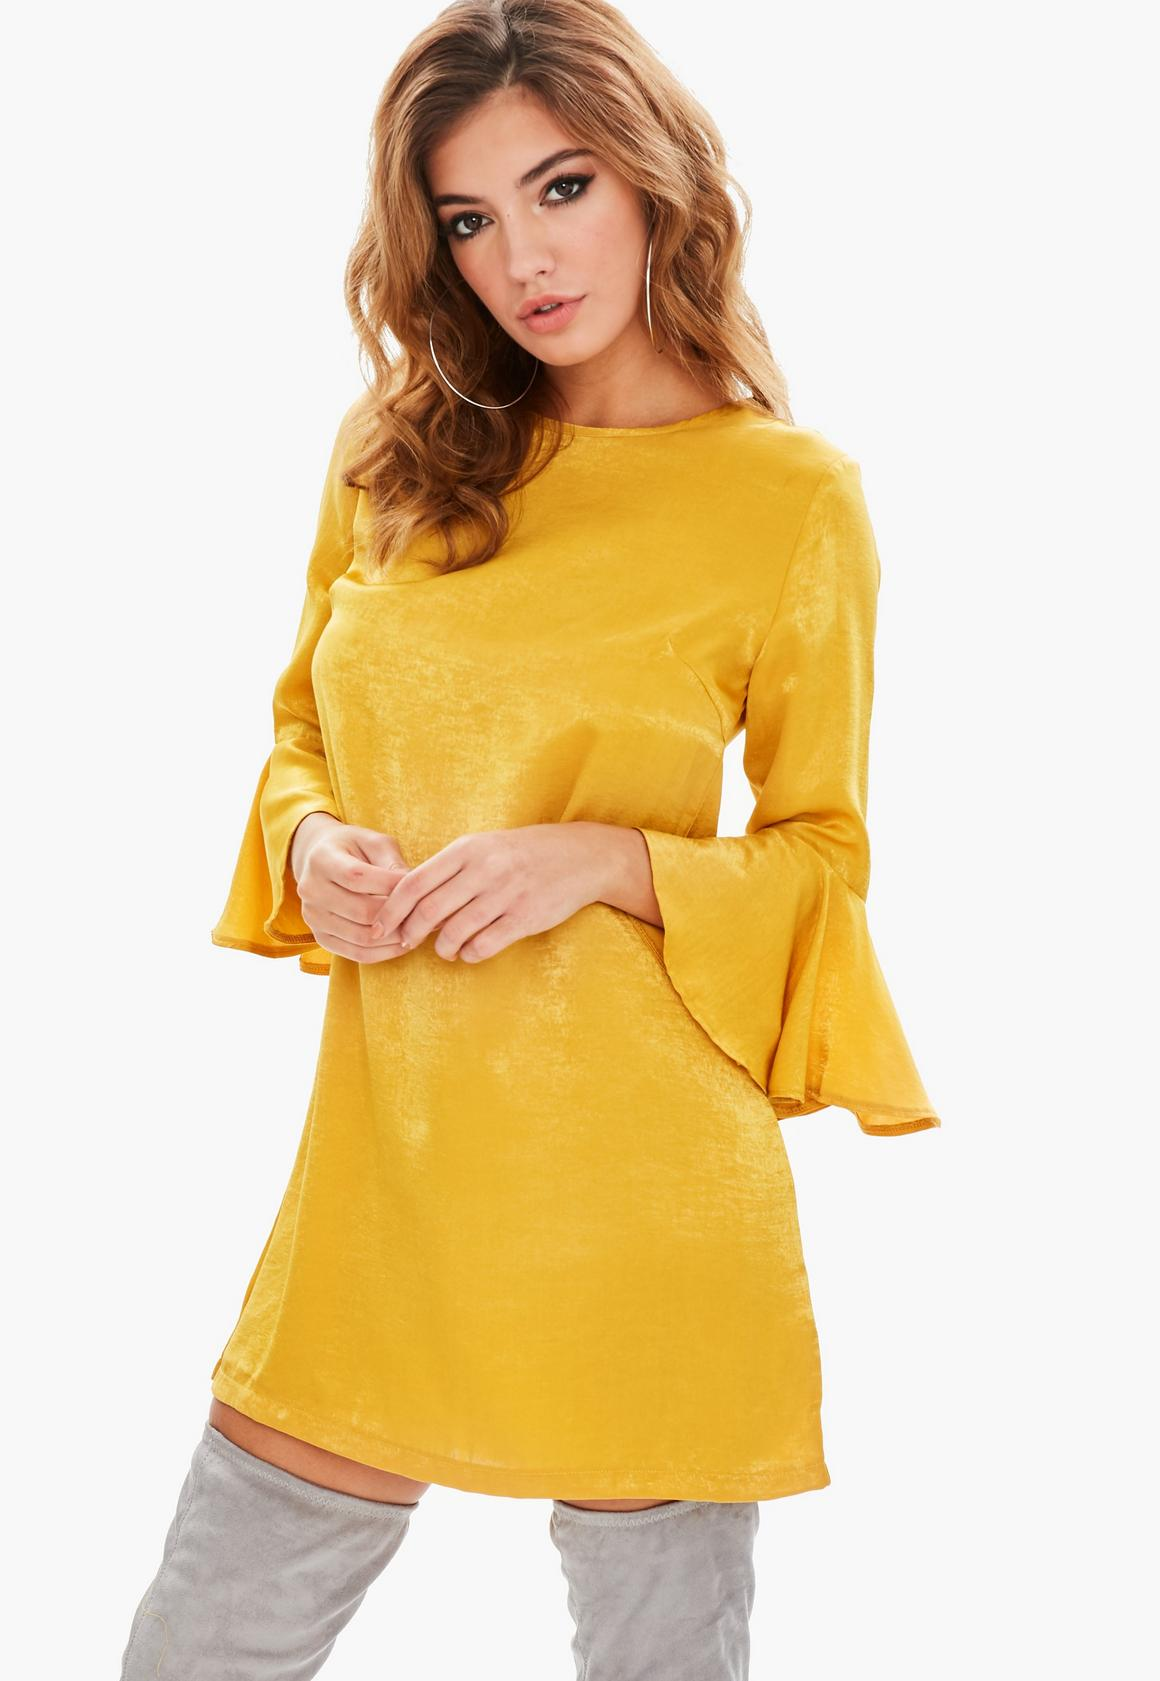 FashionDRA | Top 07 bonne raisons d'oser la robe jaune